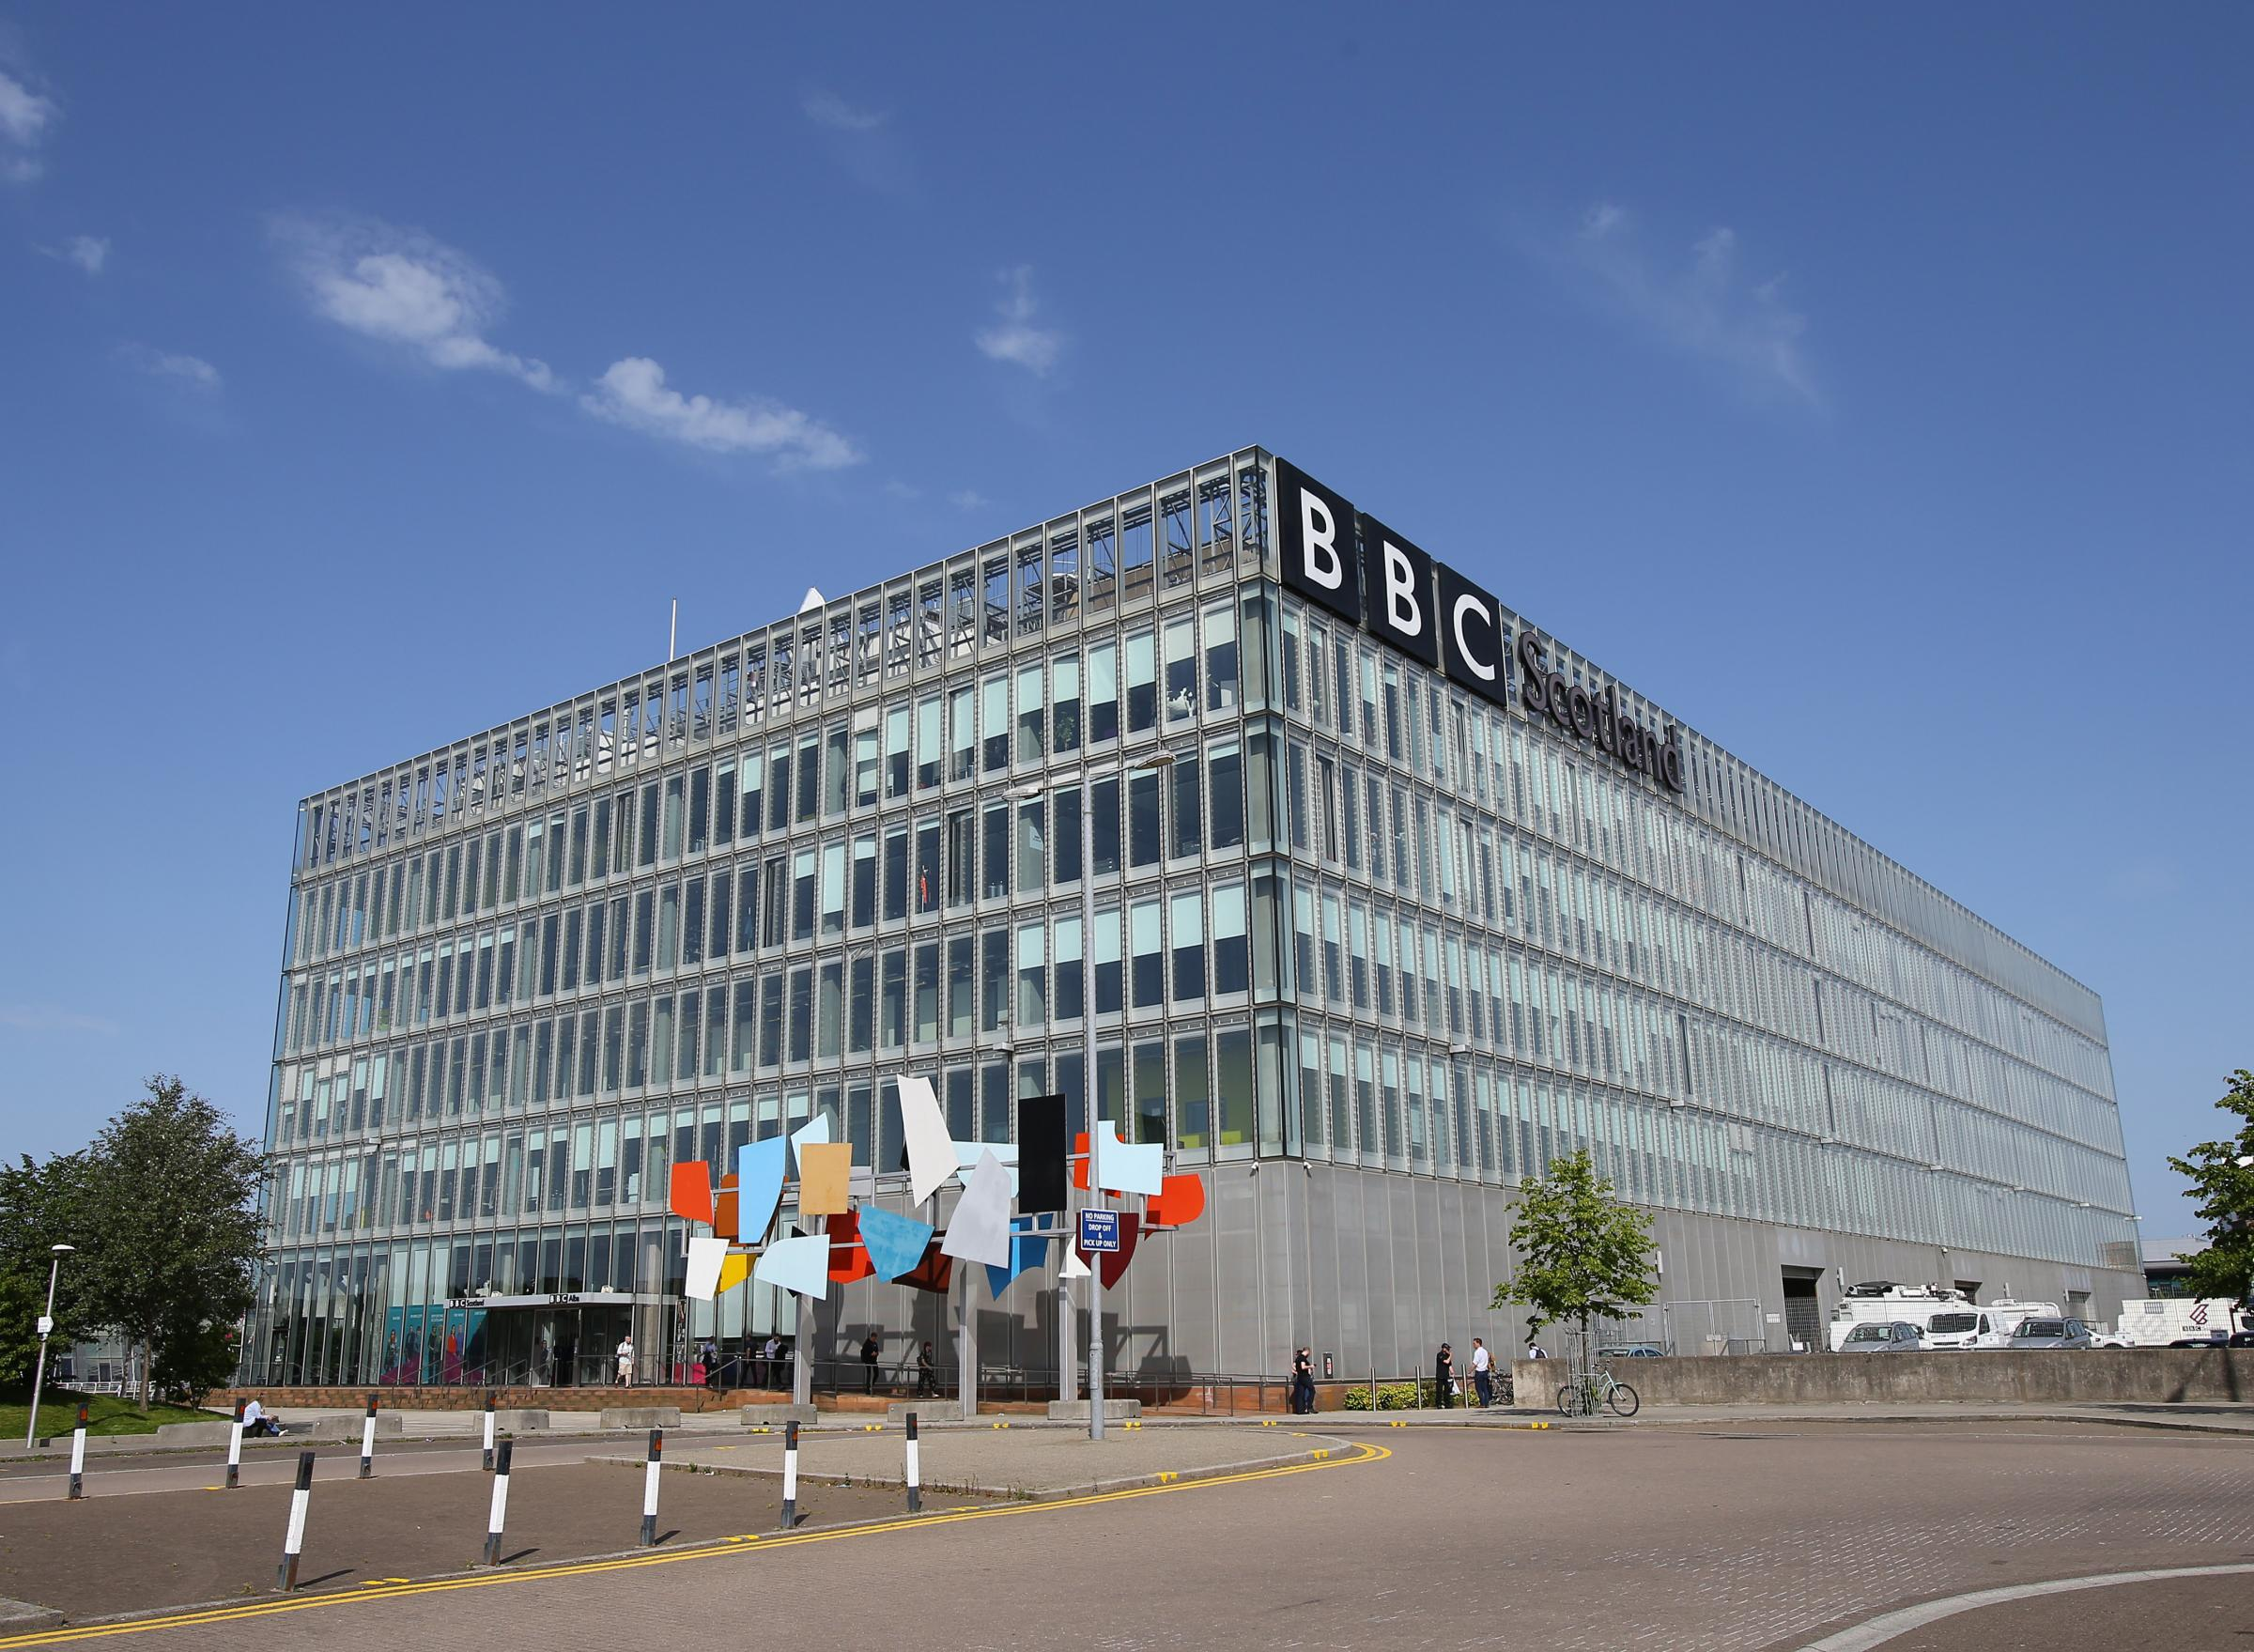 Fears over future of the BBC remain well-founded